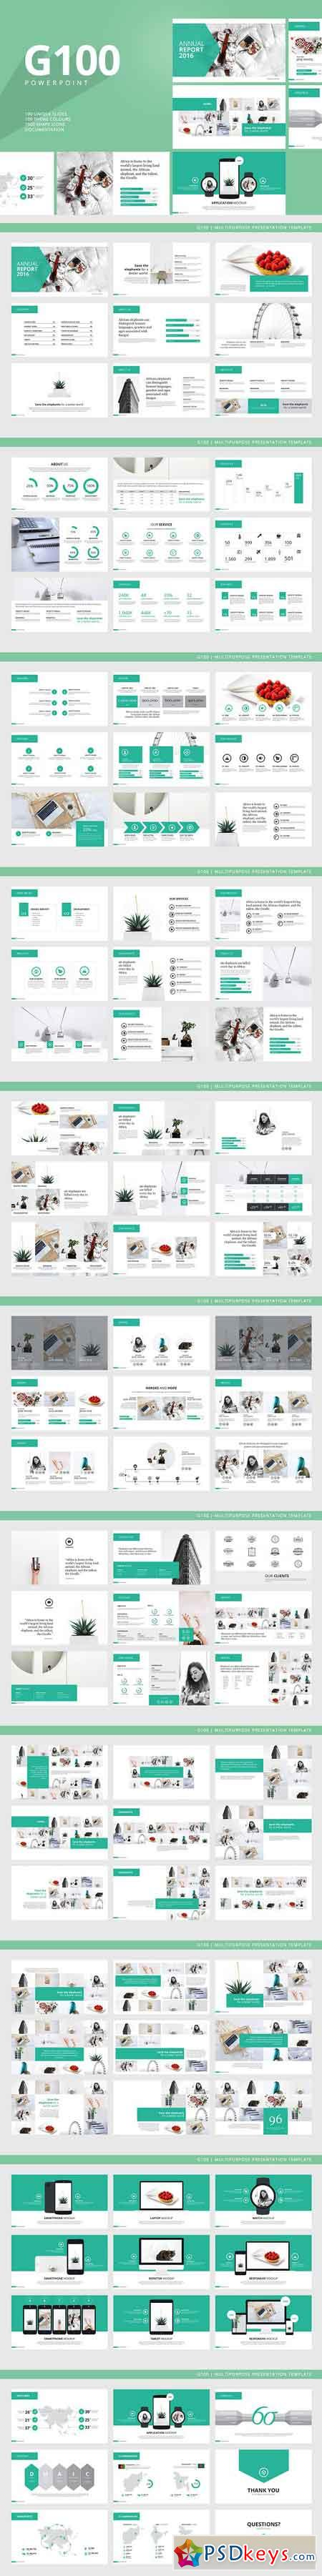 g100 magazine powerpoint template 1071828 » free download, Powerpoint templates